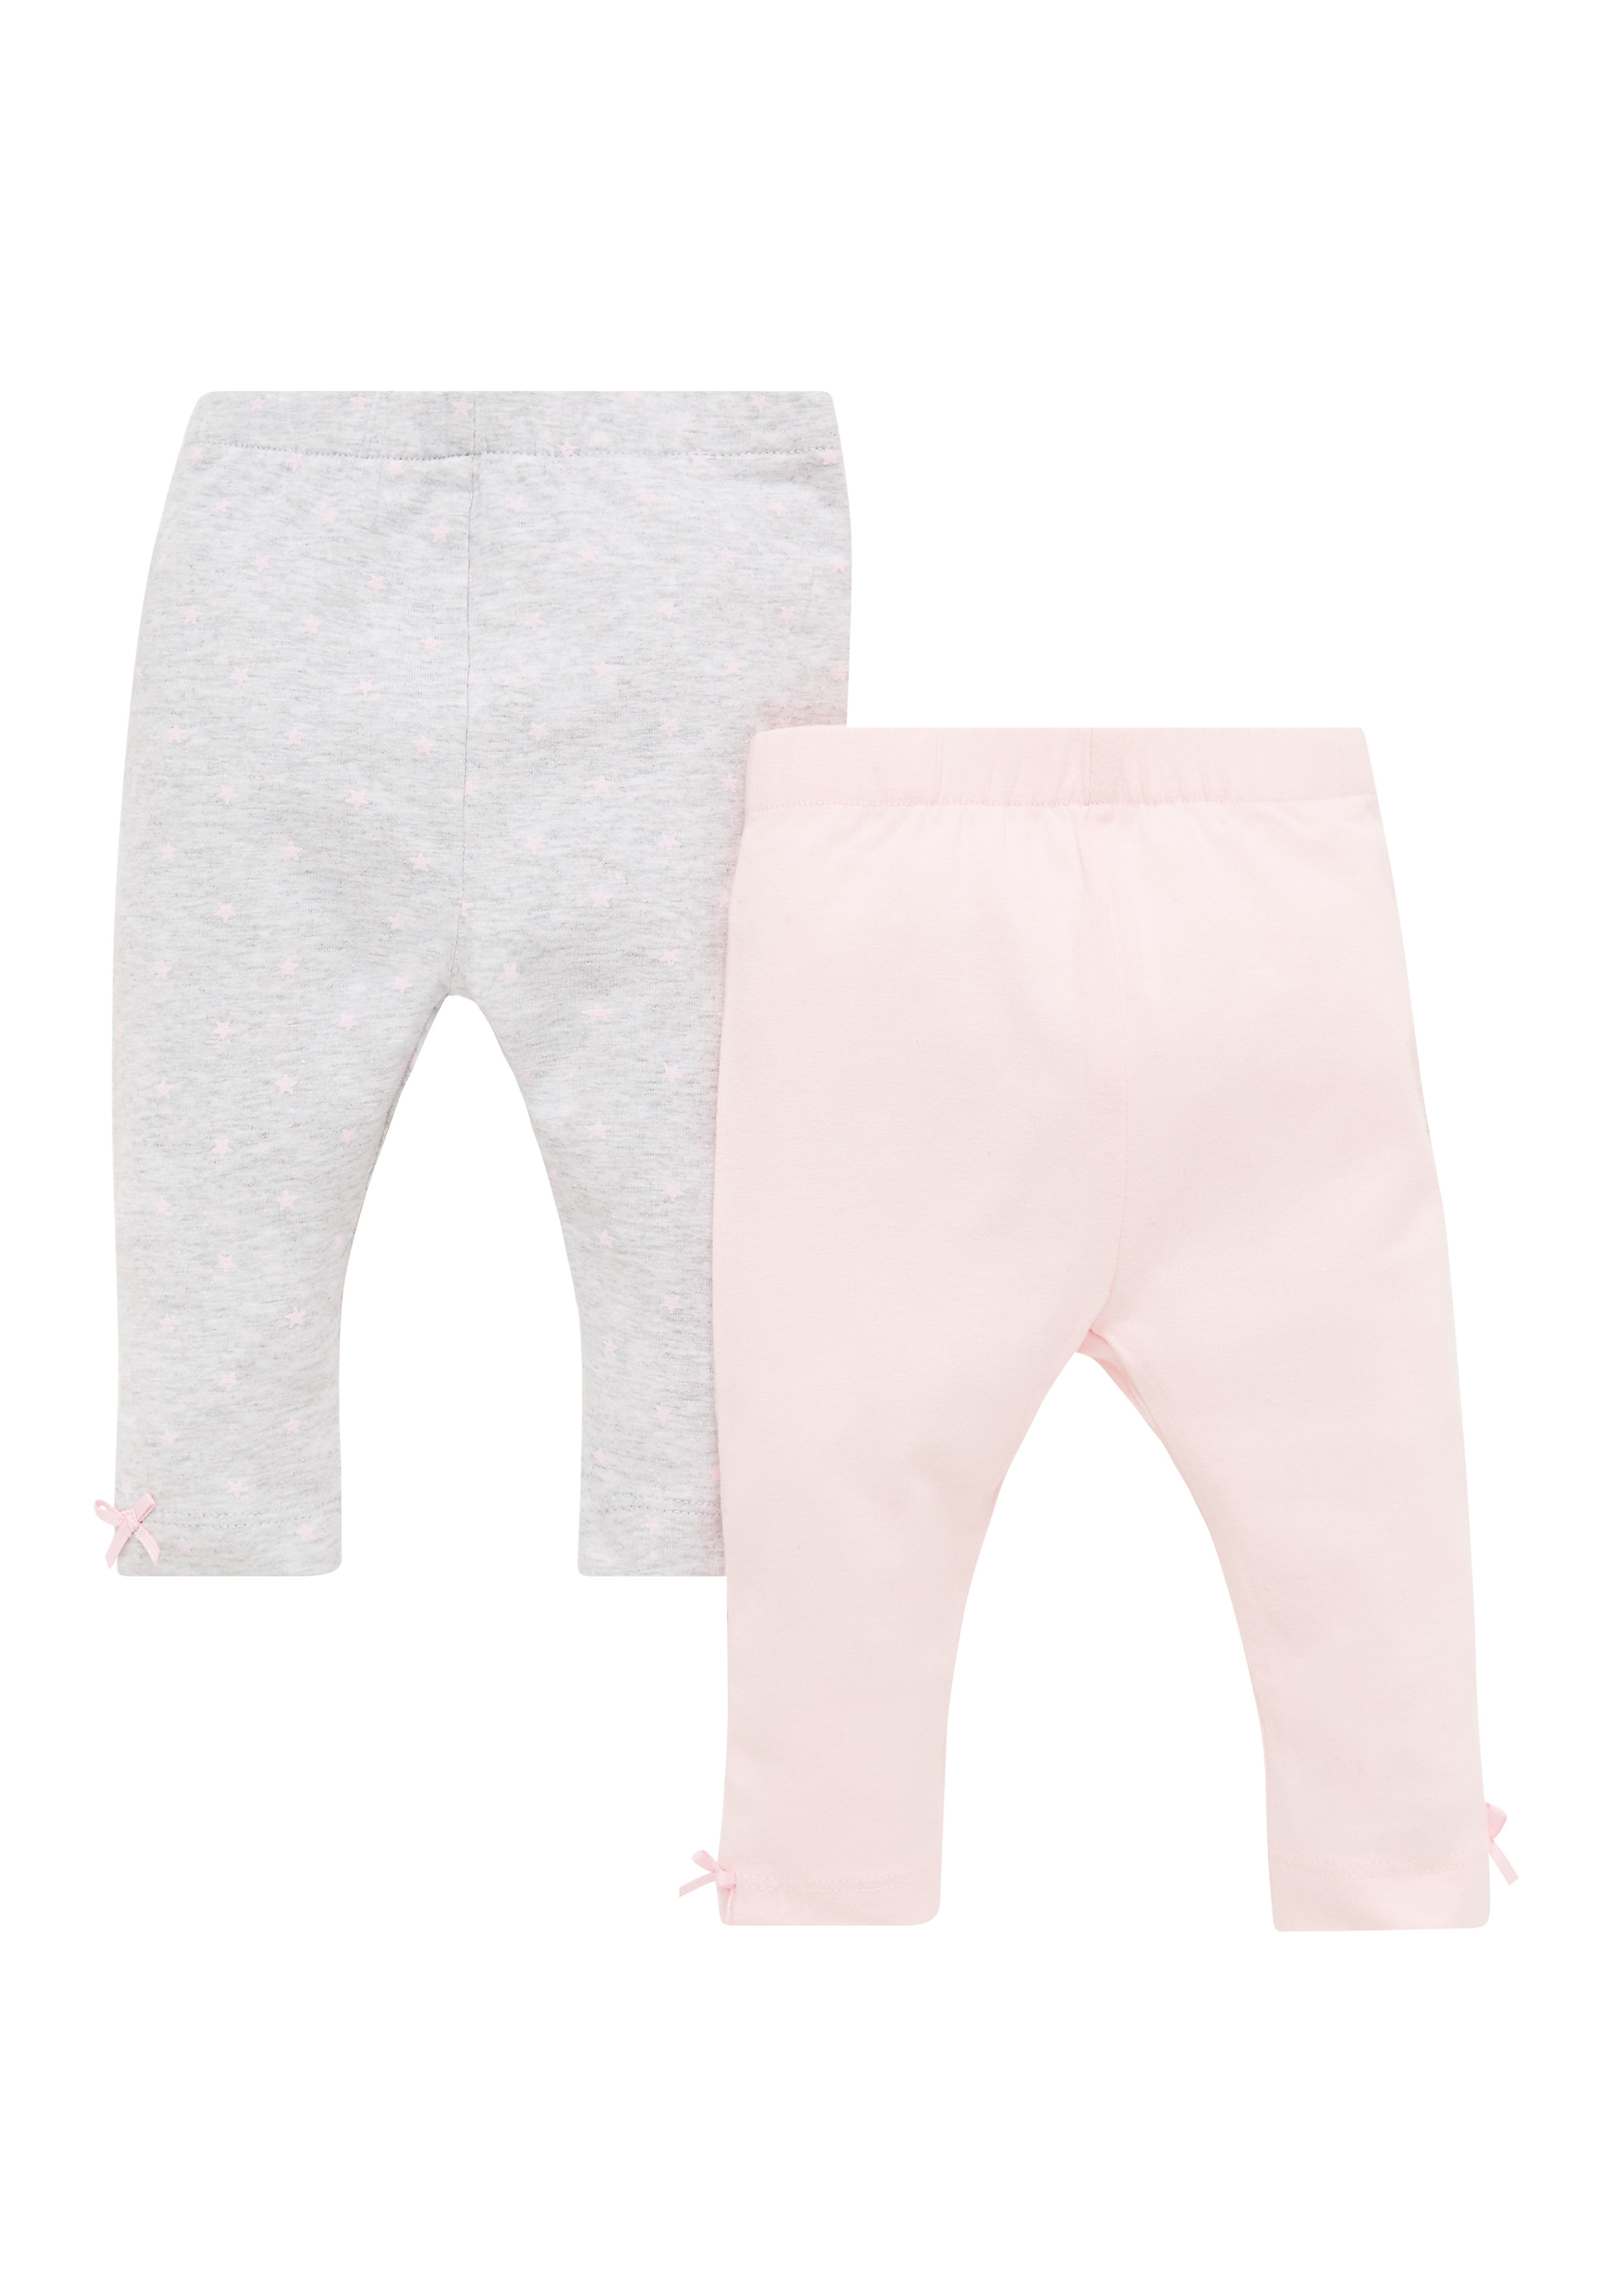 Mothercare | Girls Star Print And Pink Leggings - Pack Of 2